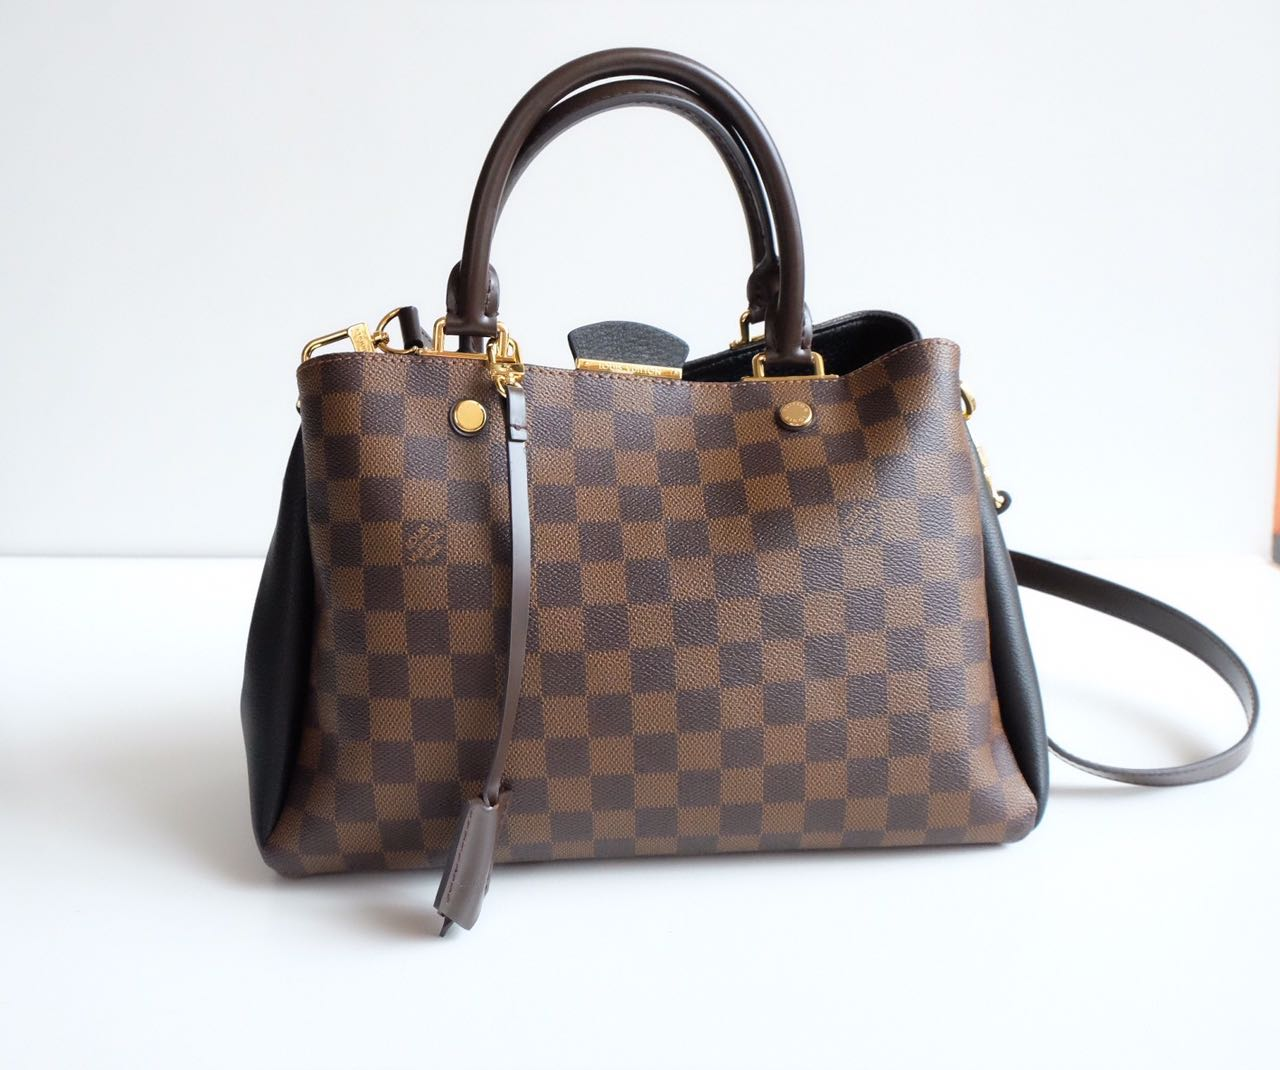 Louis Vuitton Tas 2016